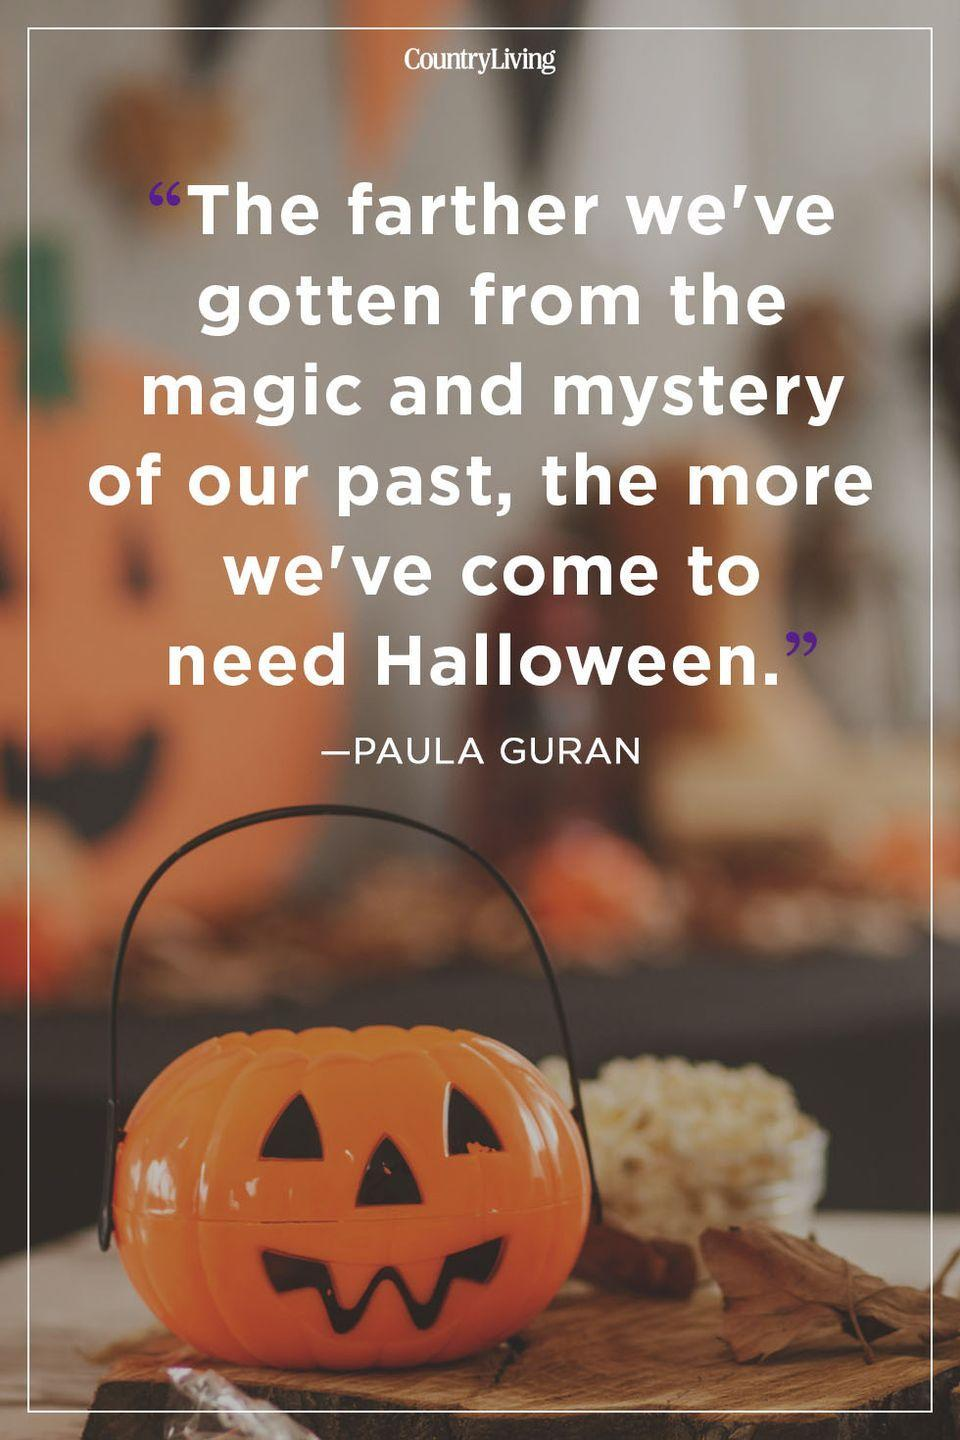 """<p>""""The farther we've gotten from the magic and mystery of our past, the more we've come to need Halloween.""""</p>"""